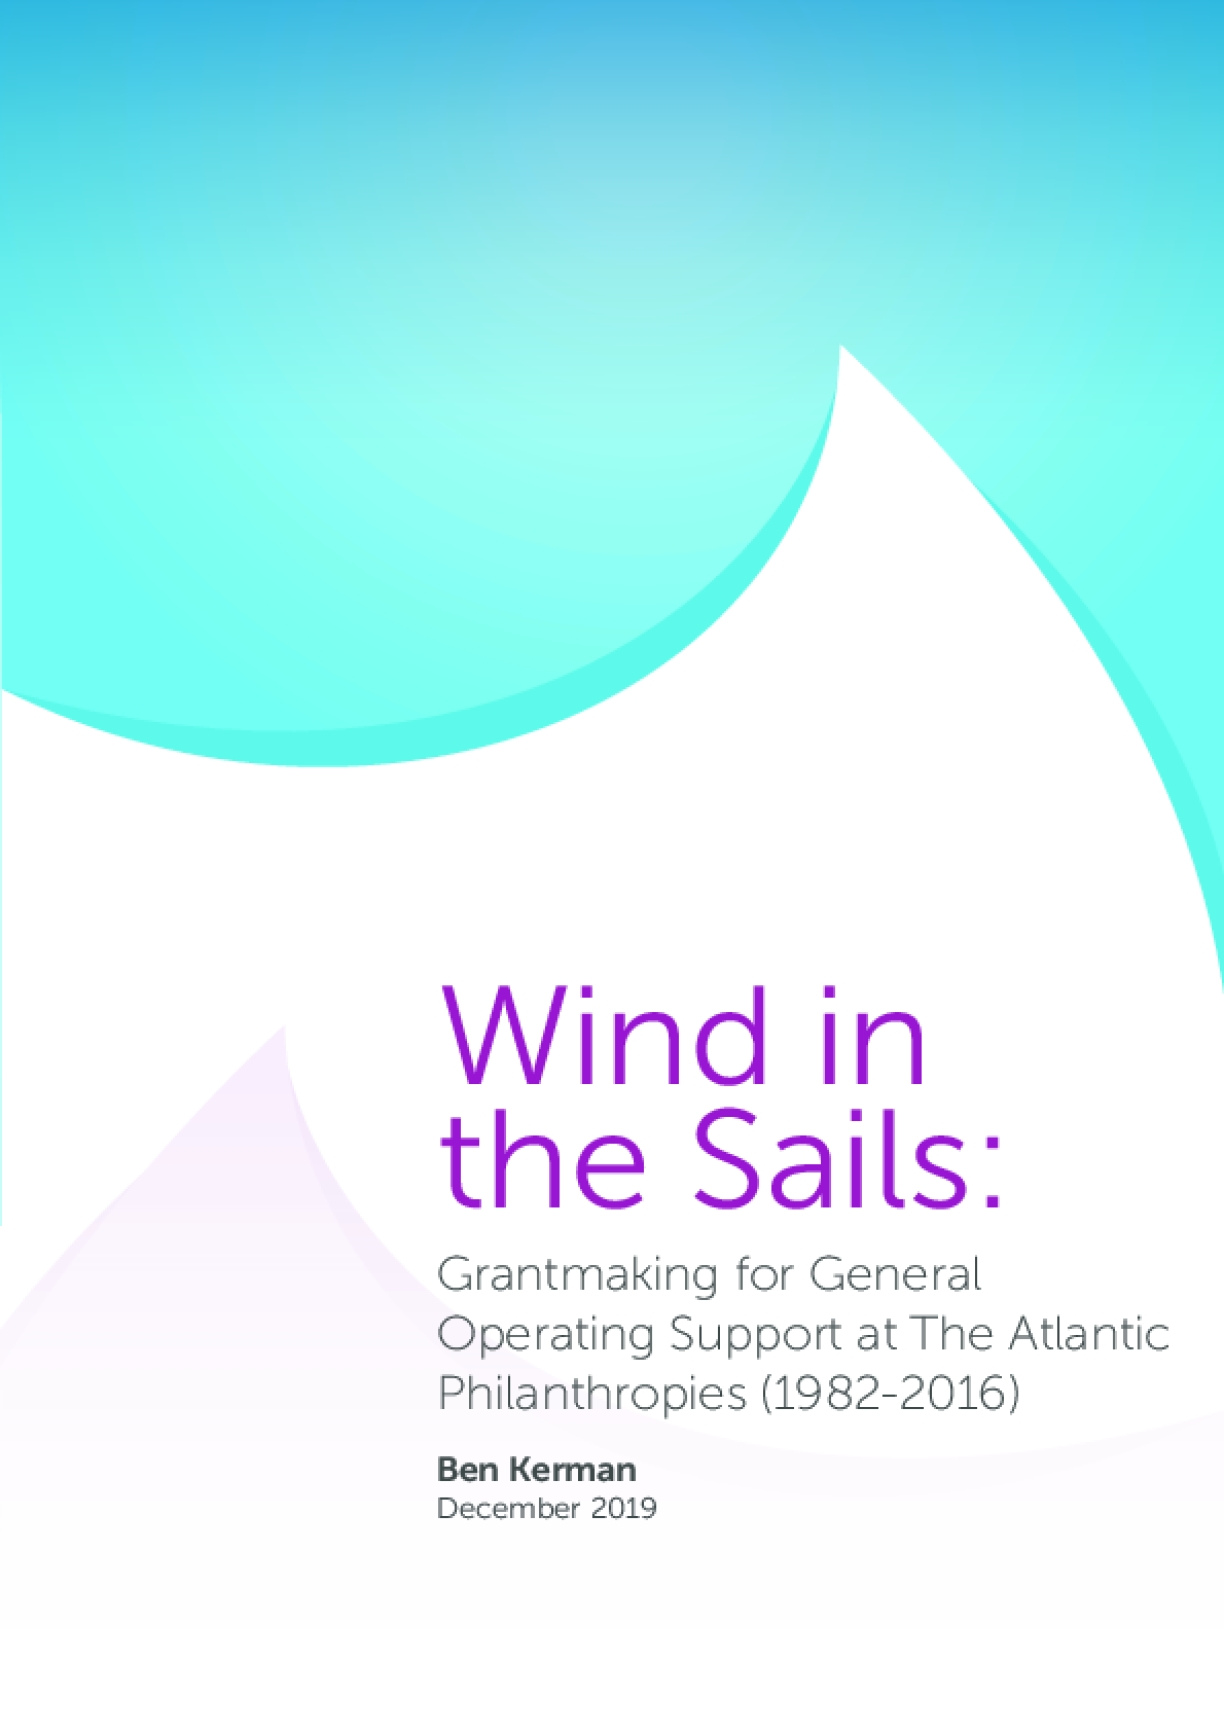 Wind in the Sails: Grantmaking for General Operating Support at The Atlantic Philanthropies (1982-2016)